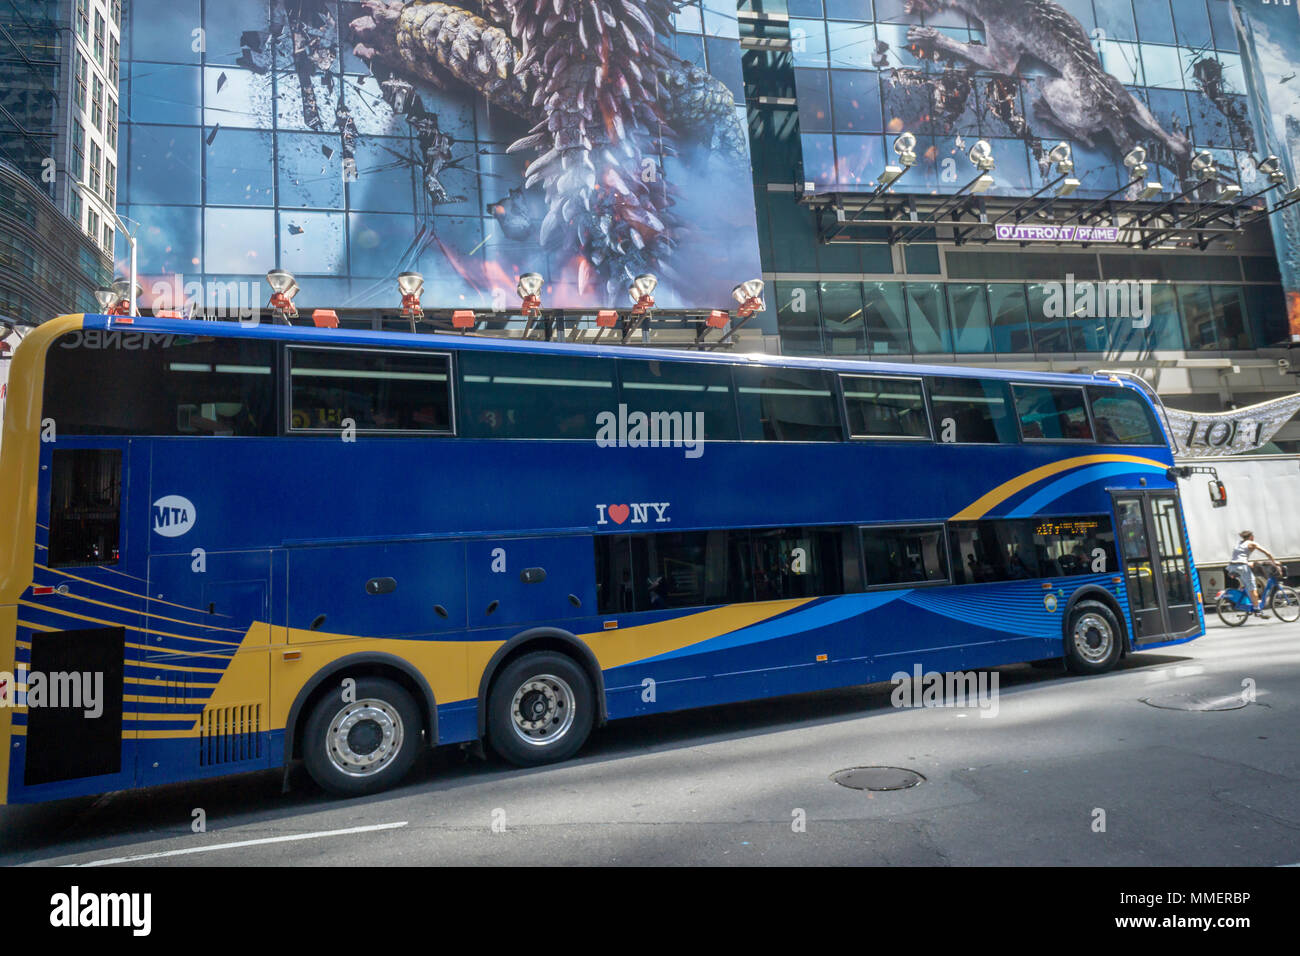 The all-new double-decker test bus passes through Midtown Manhattan in New York on Thursday, May 3, 2018. The higher capacity bus running as a test will travel on the X17J route between Staten Island and Midtown Manhattan. (© Richard B. Levine) - Stock Image